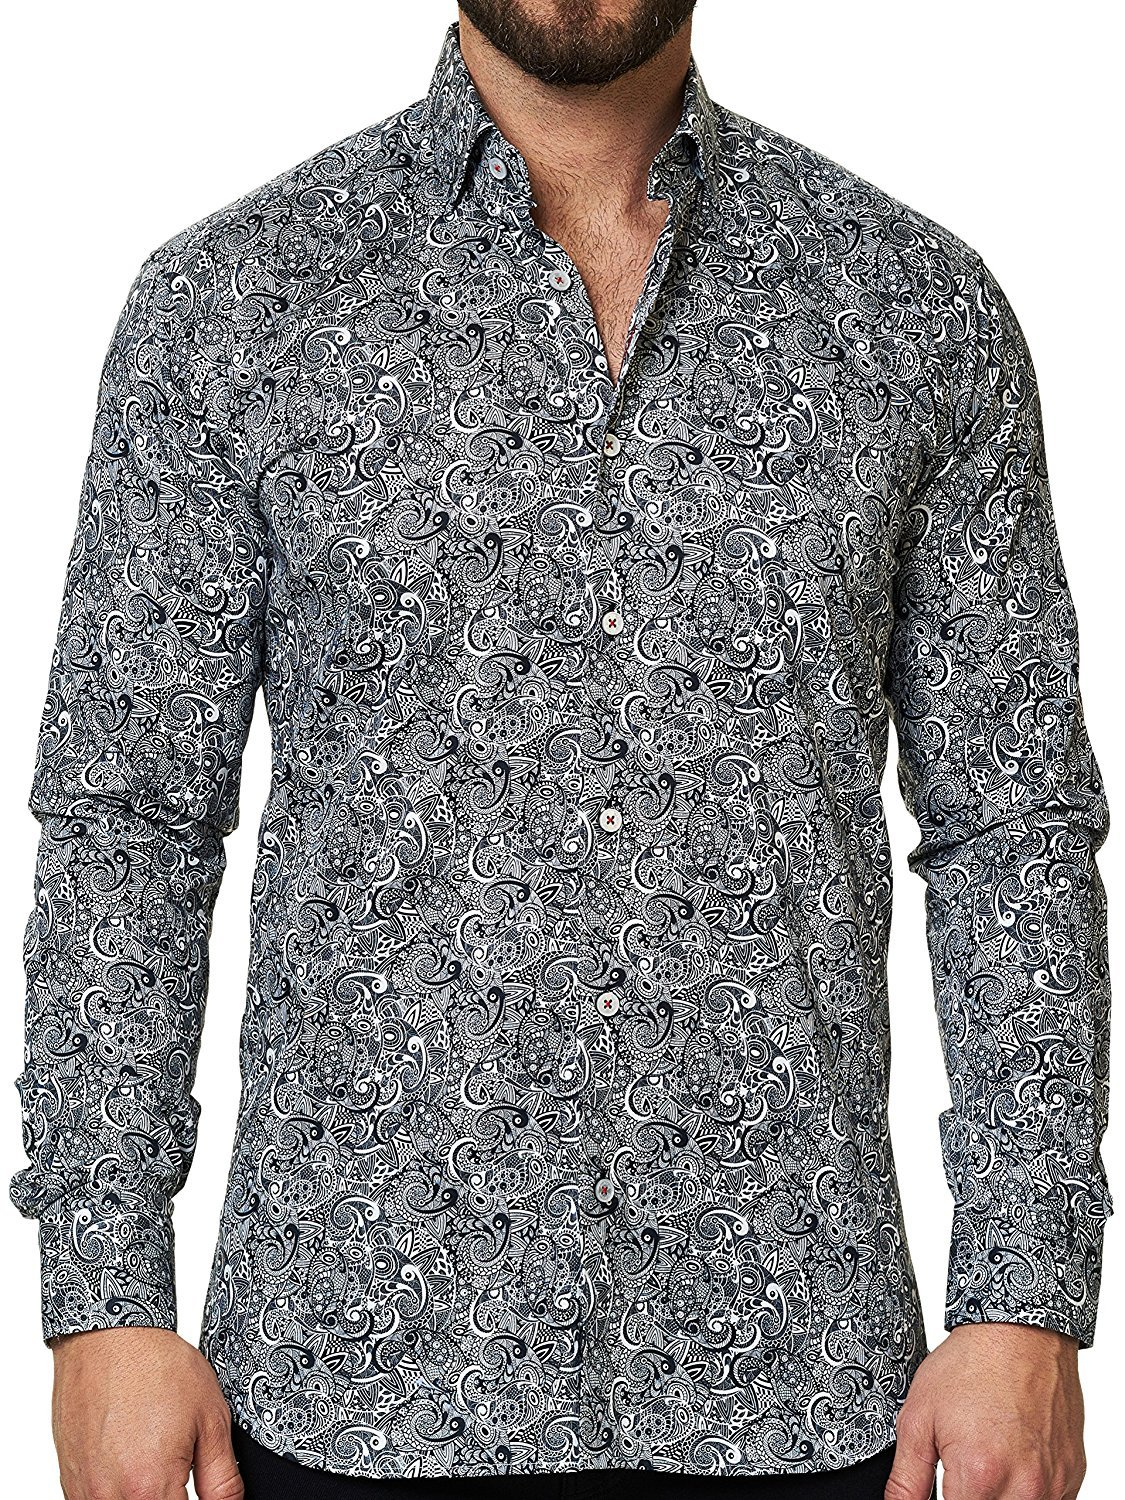 Maceoo Mens Designer Dress Shirt - Stylish & Trendy- Paisley Grey - Tailored Fit